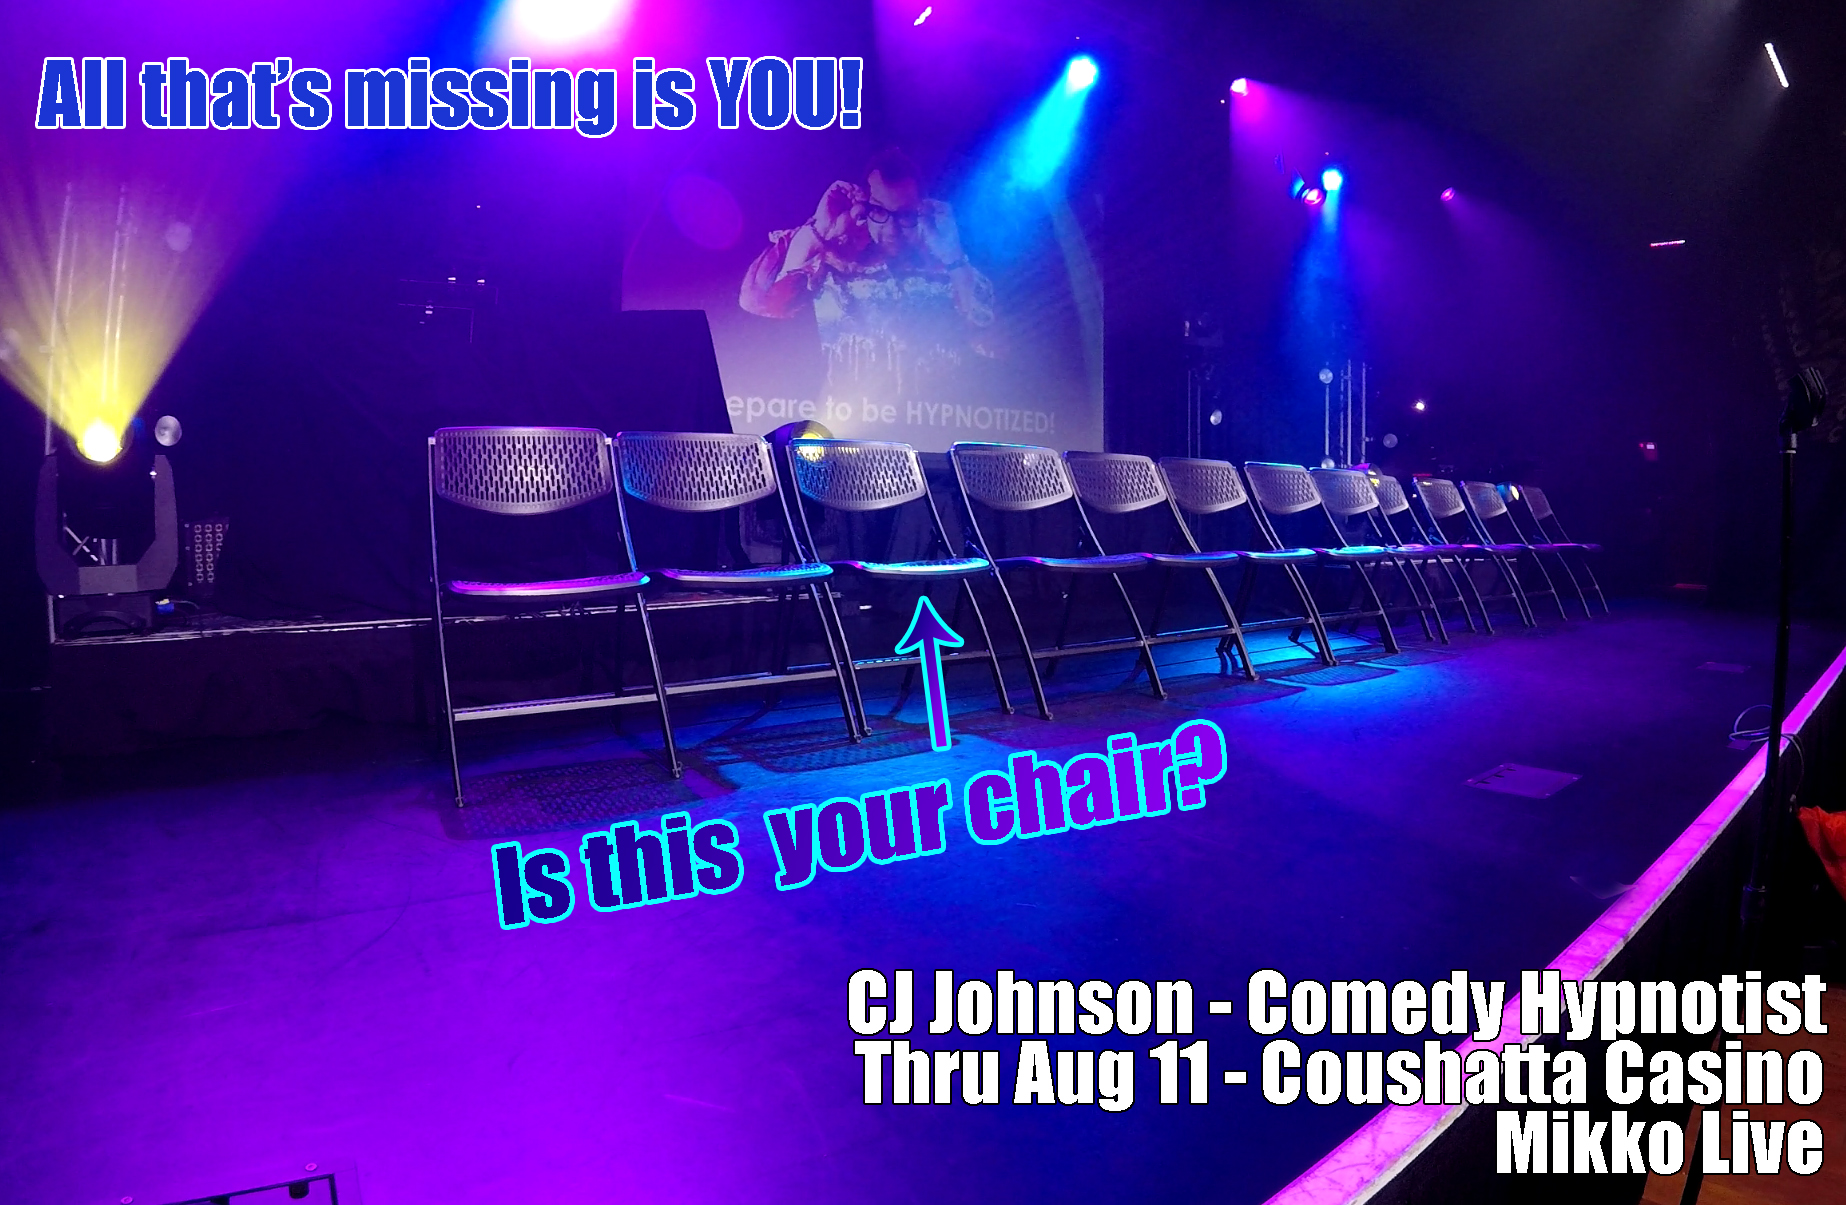 Hypnotist CJ Johnson at Coushatta Casino through Saturday, Aug 11, 2018